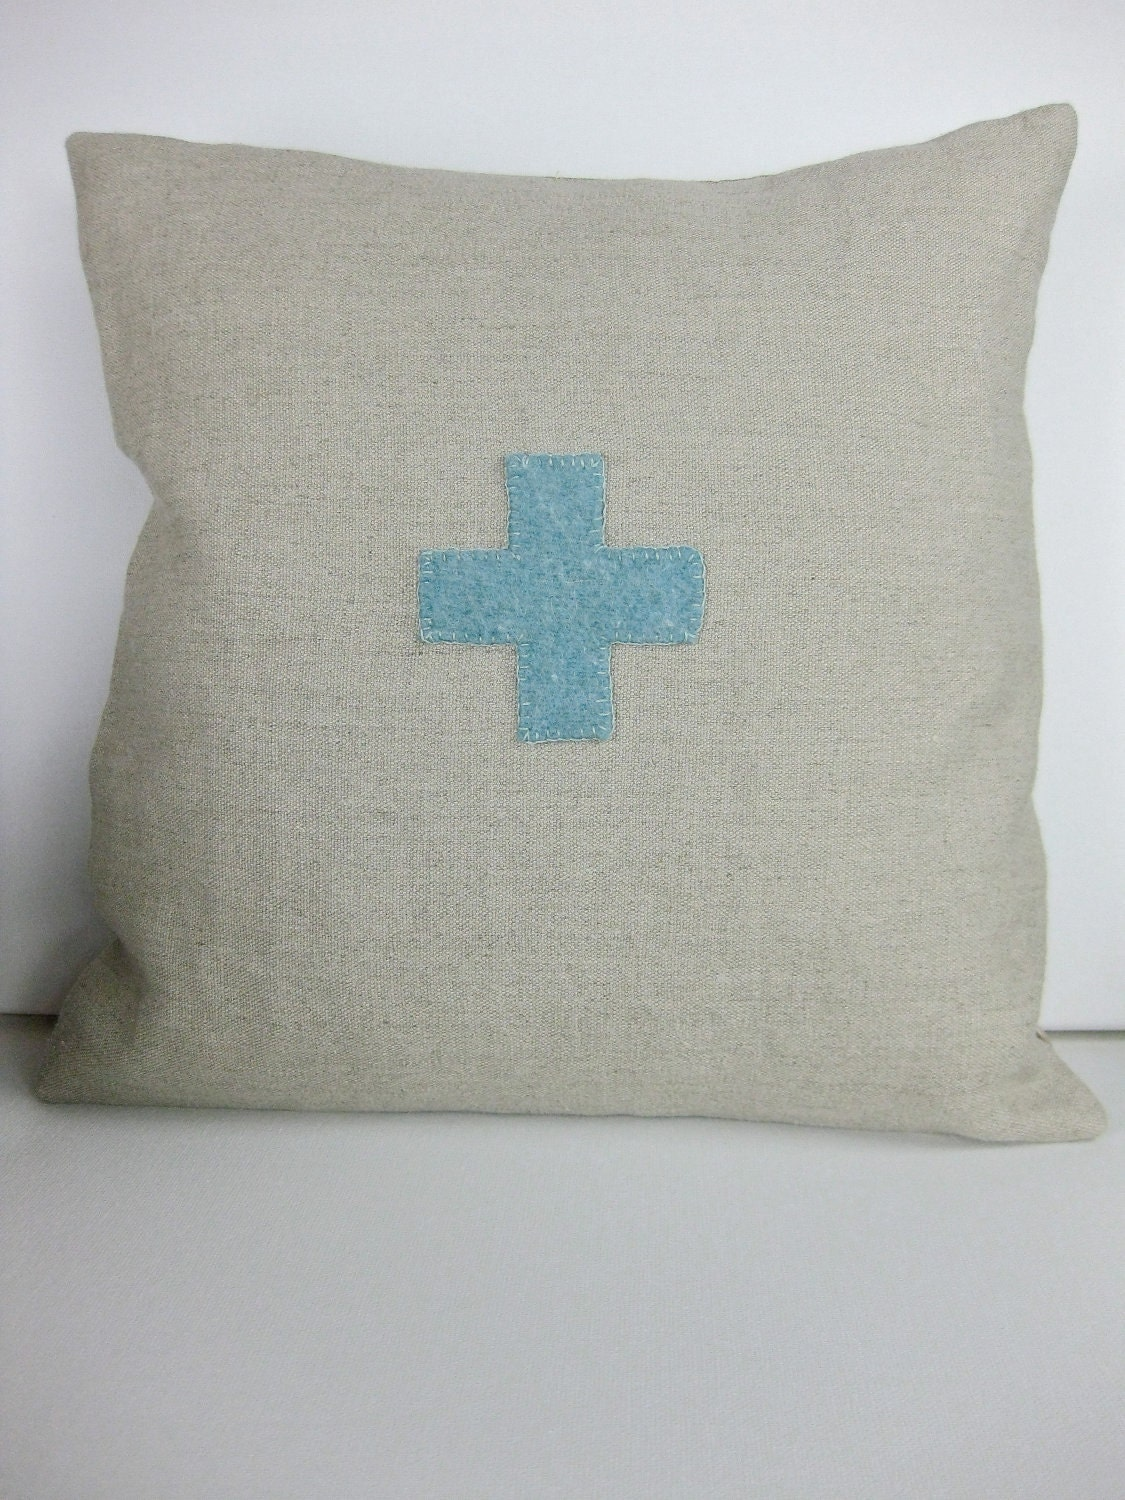 Beautiful Decorative Vintage Looking Swiss Cross Pillow - Hemp & Wool